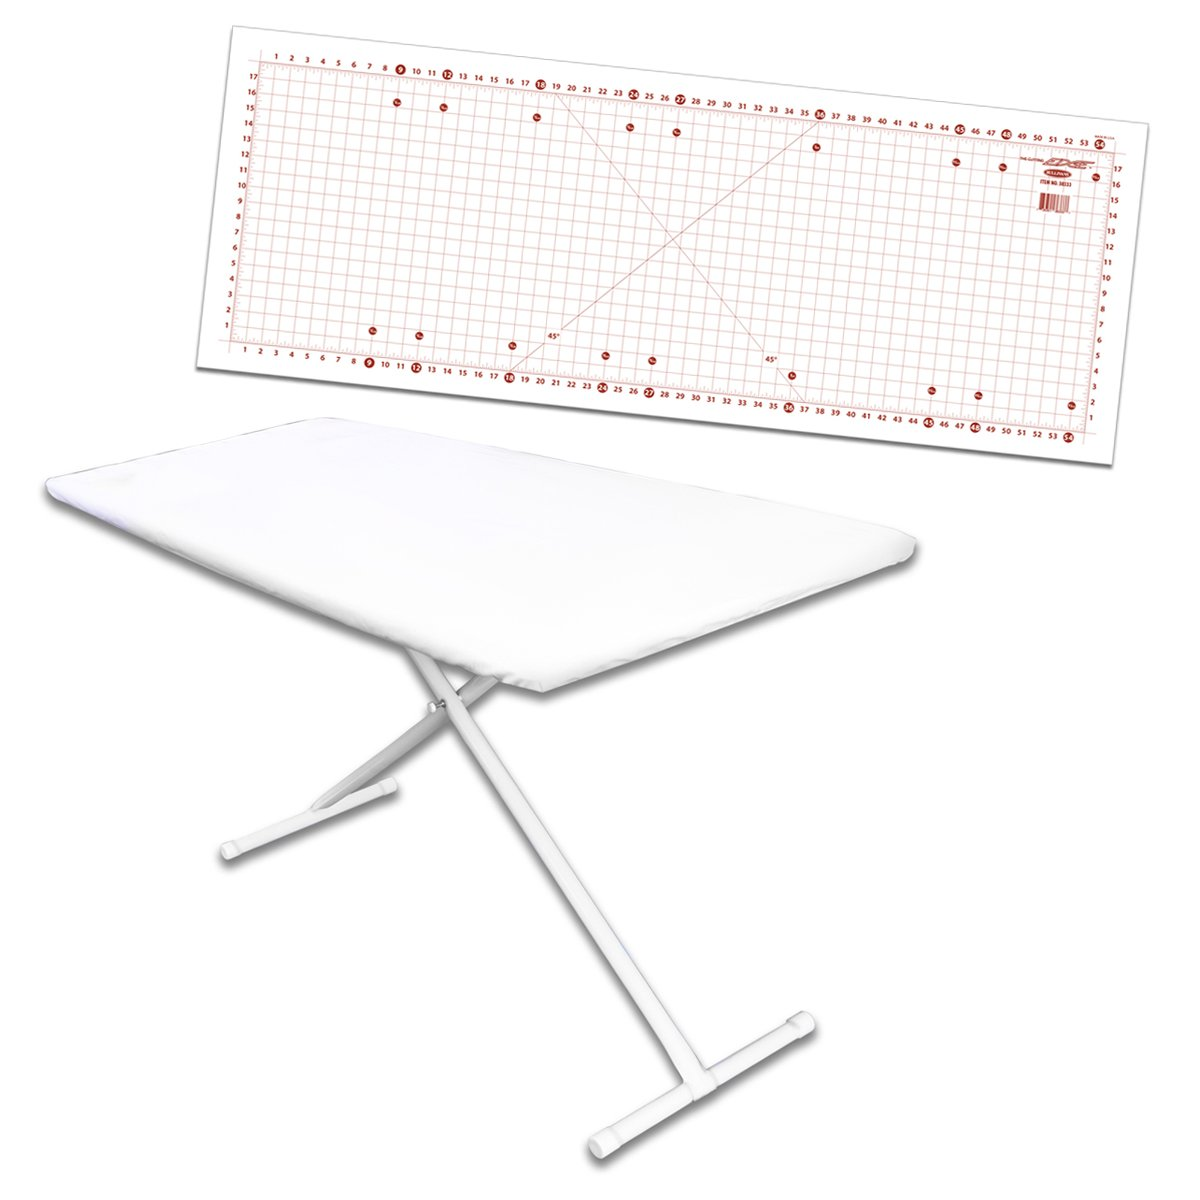 Sullivans Better Board Ironing Board Overlay with 59-inch by 22-inch Cutting Mat Bundle by Sullivans